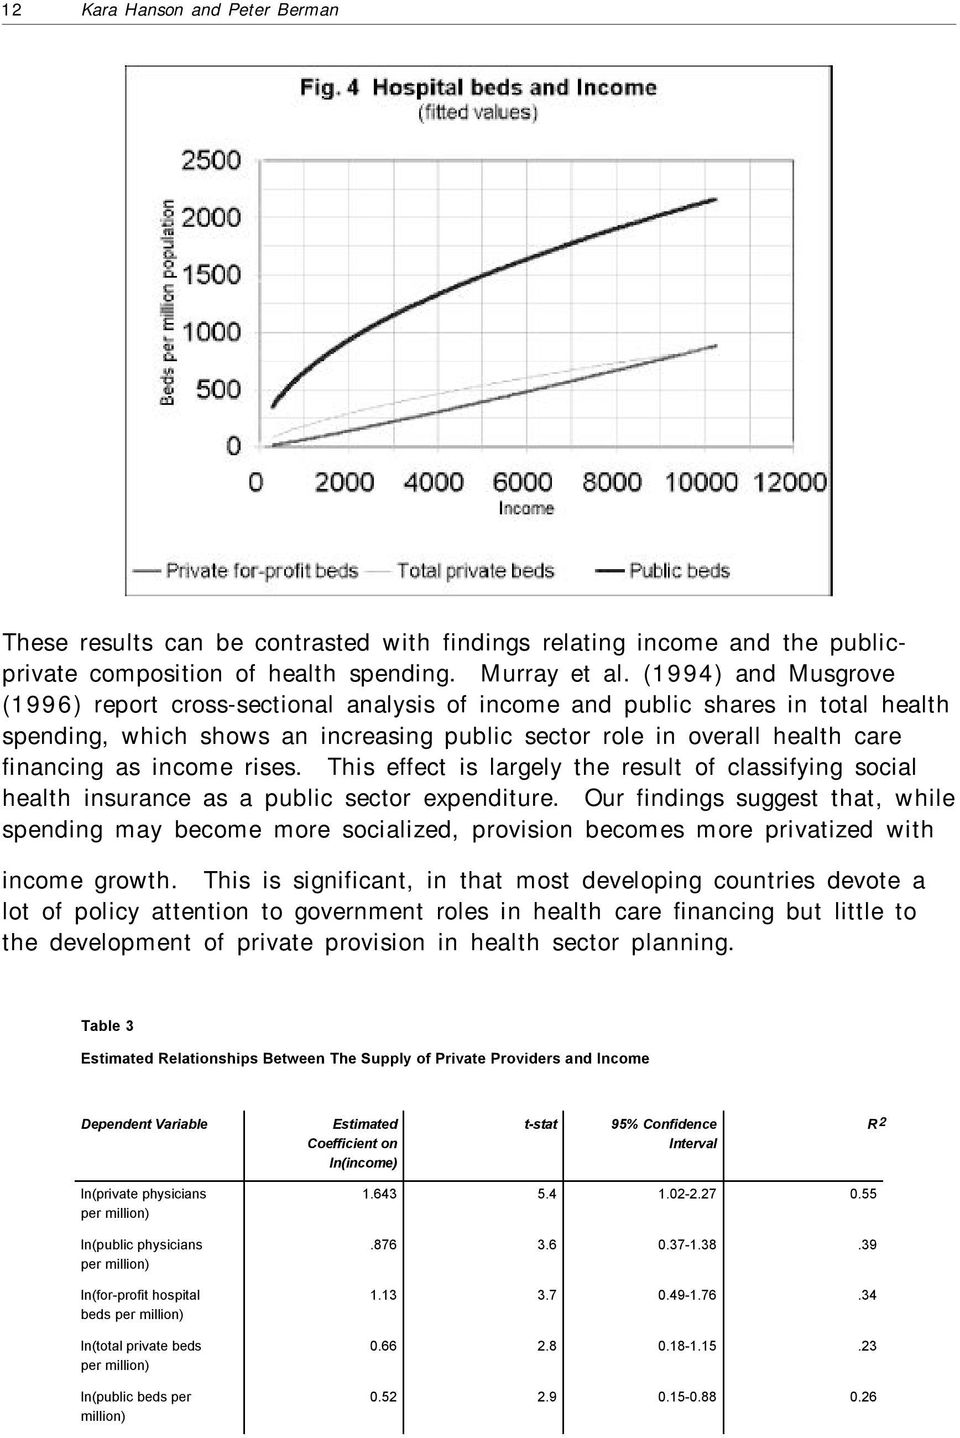 income rises. This effect is largely the result of classifying social health insurance as a public sector expenditure.